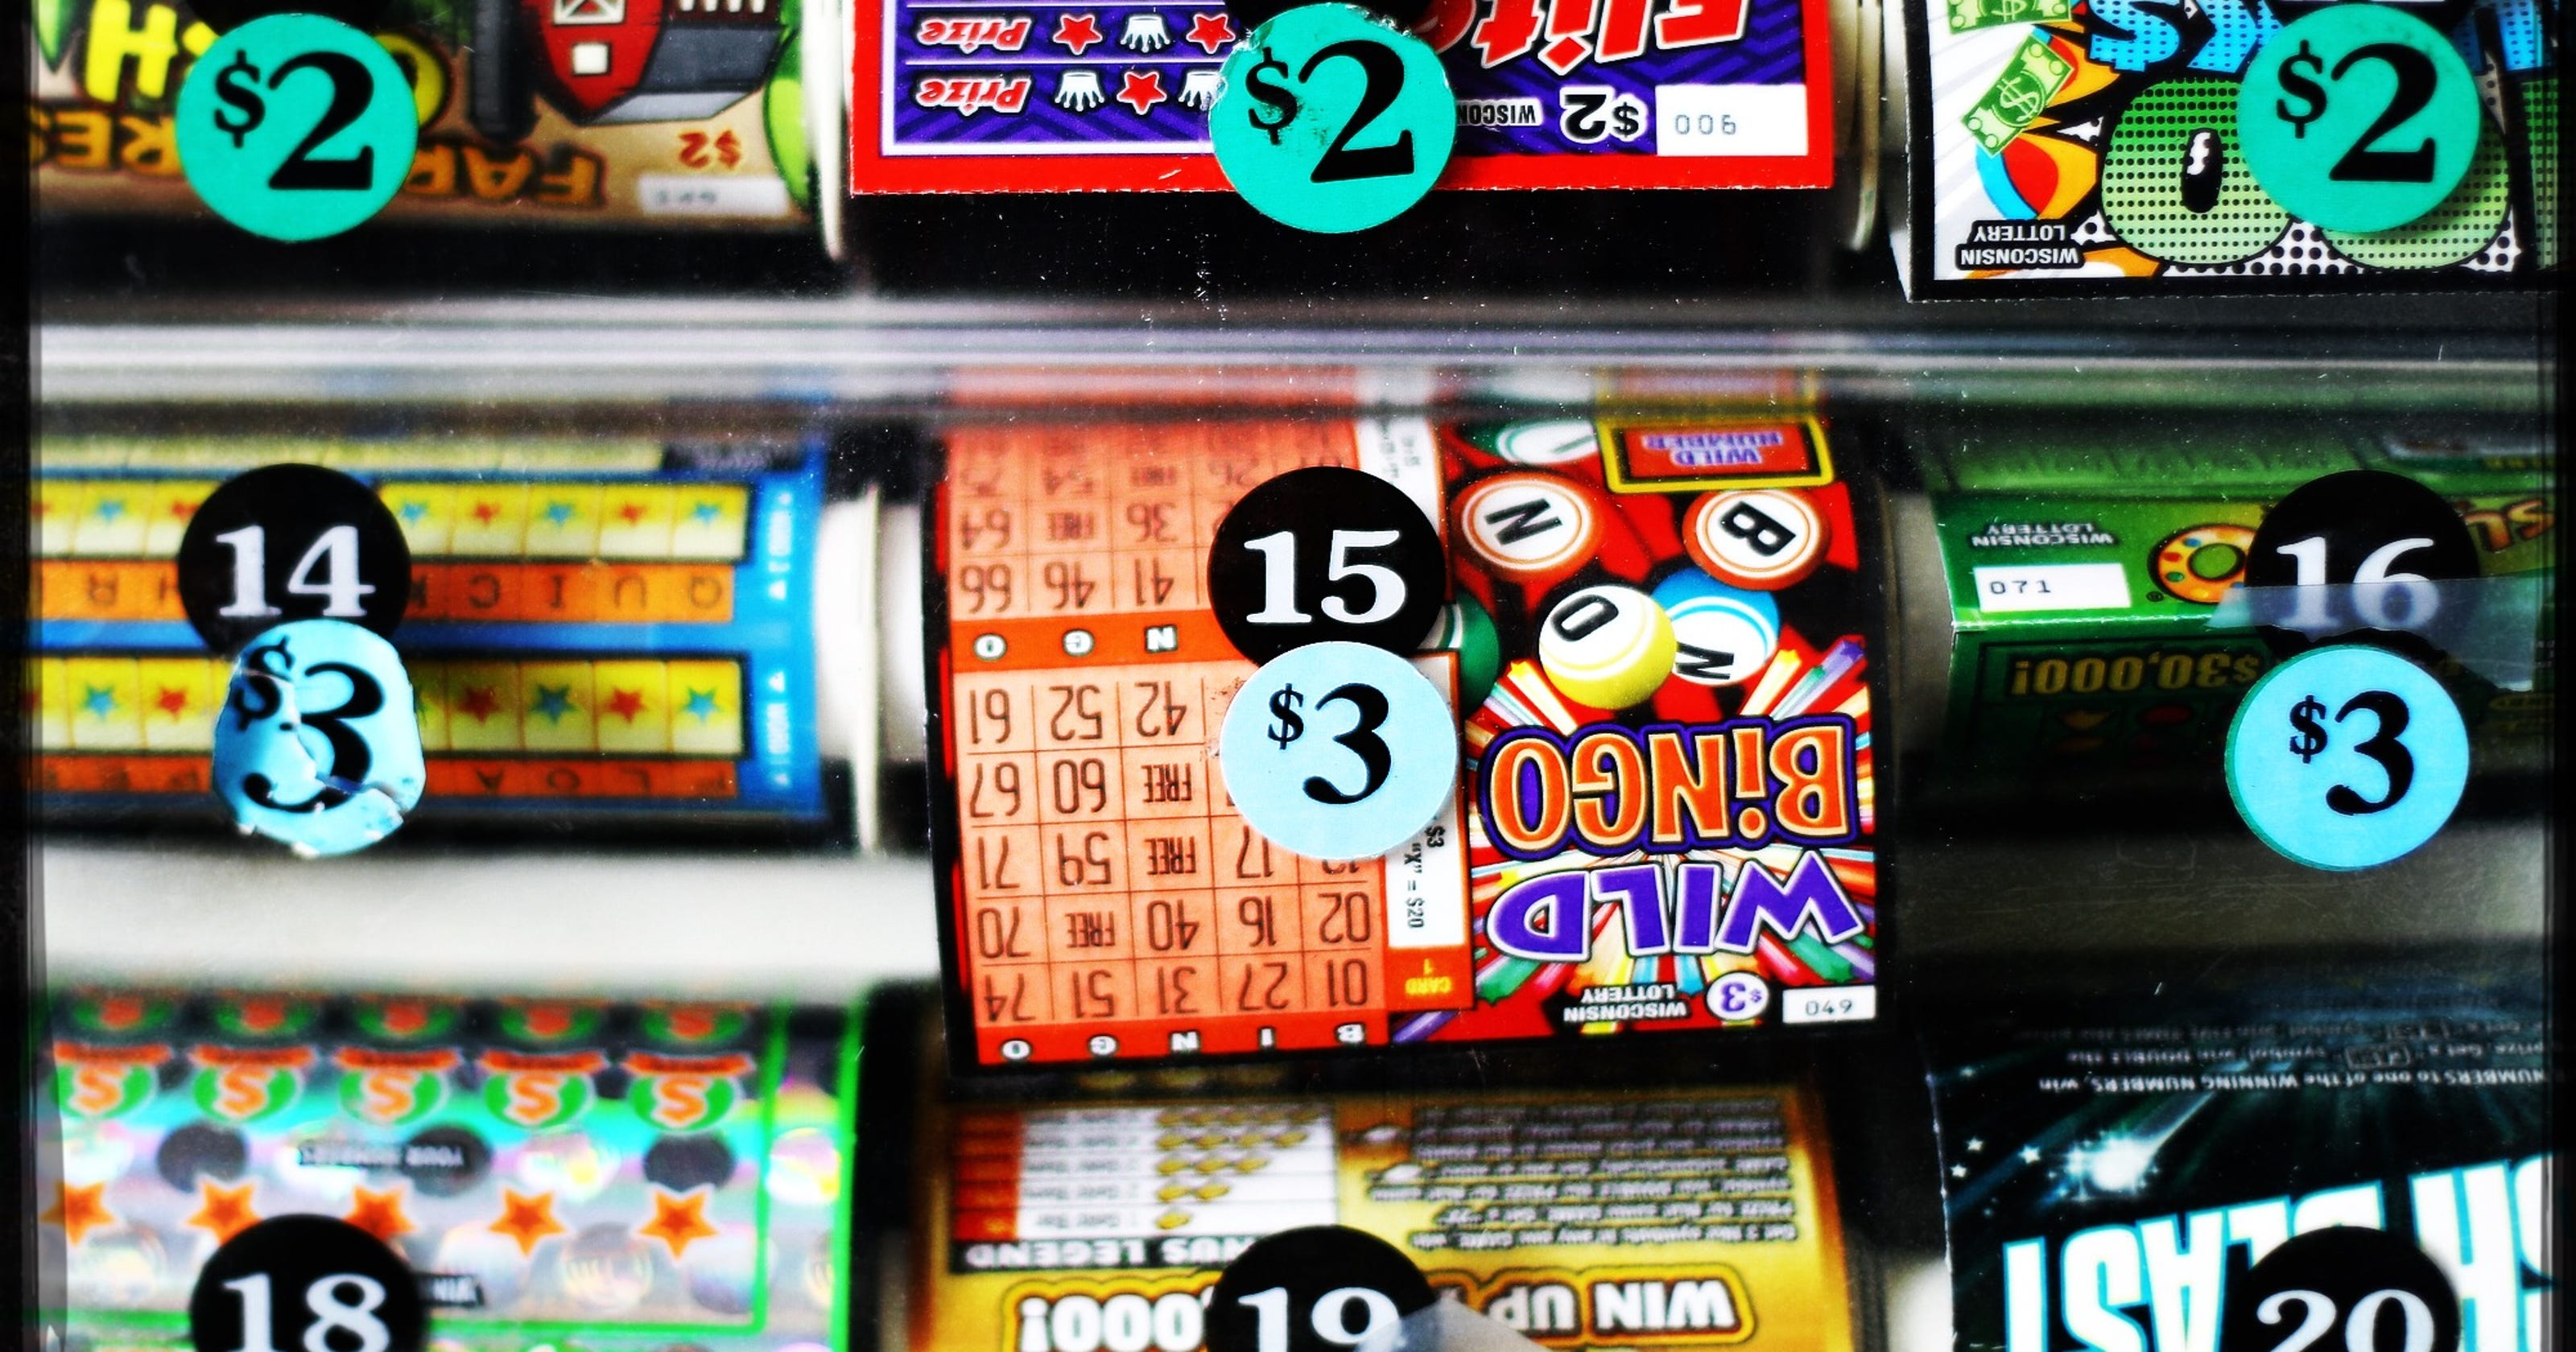 Wisconsin Lottery Some People Repeatedly Win But Do They Play Fair